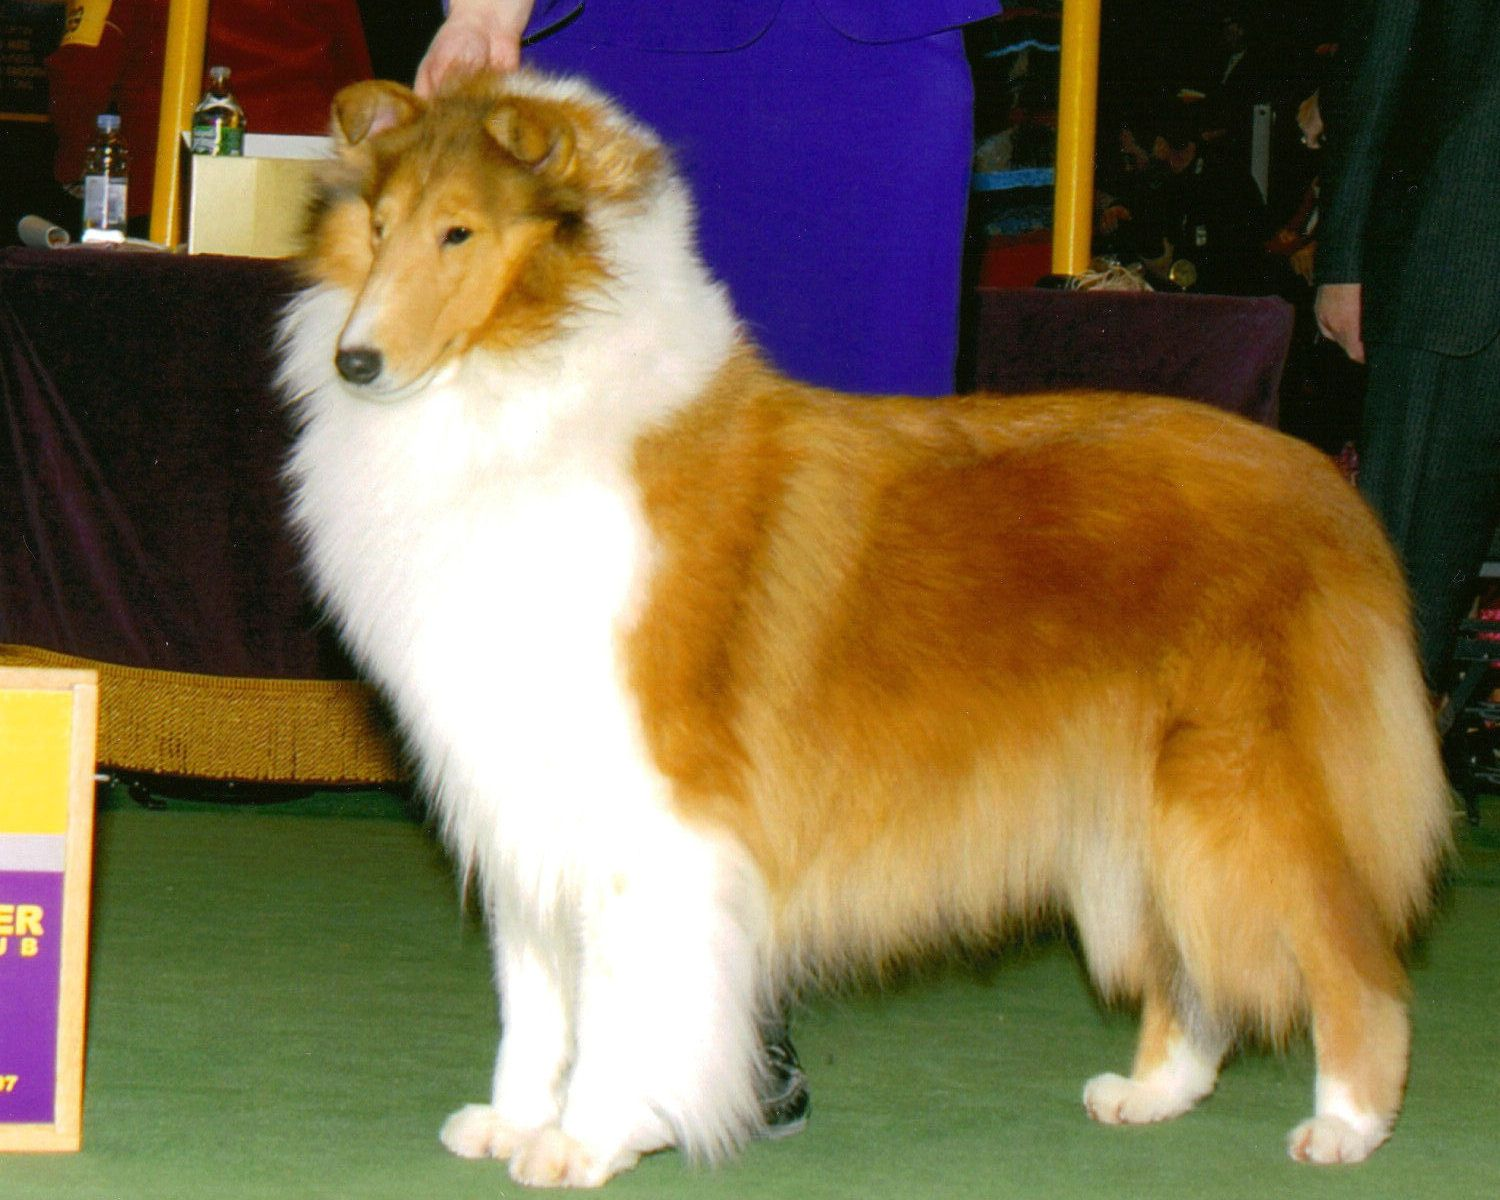 Puppies For Sale Dogs For Sale Smooth Collie Collie Puppies For Sale Dogs